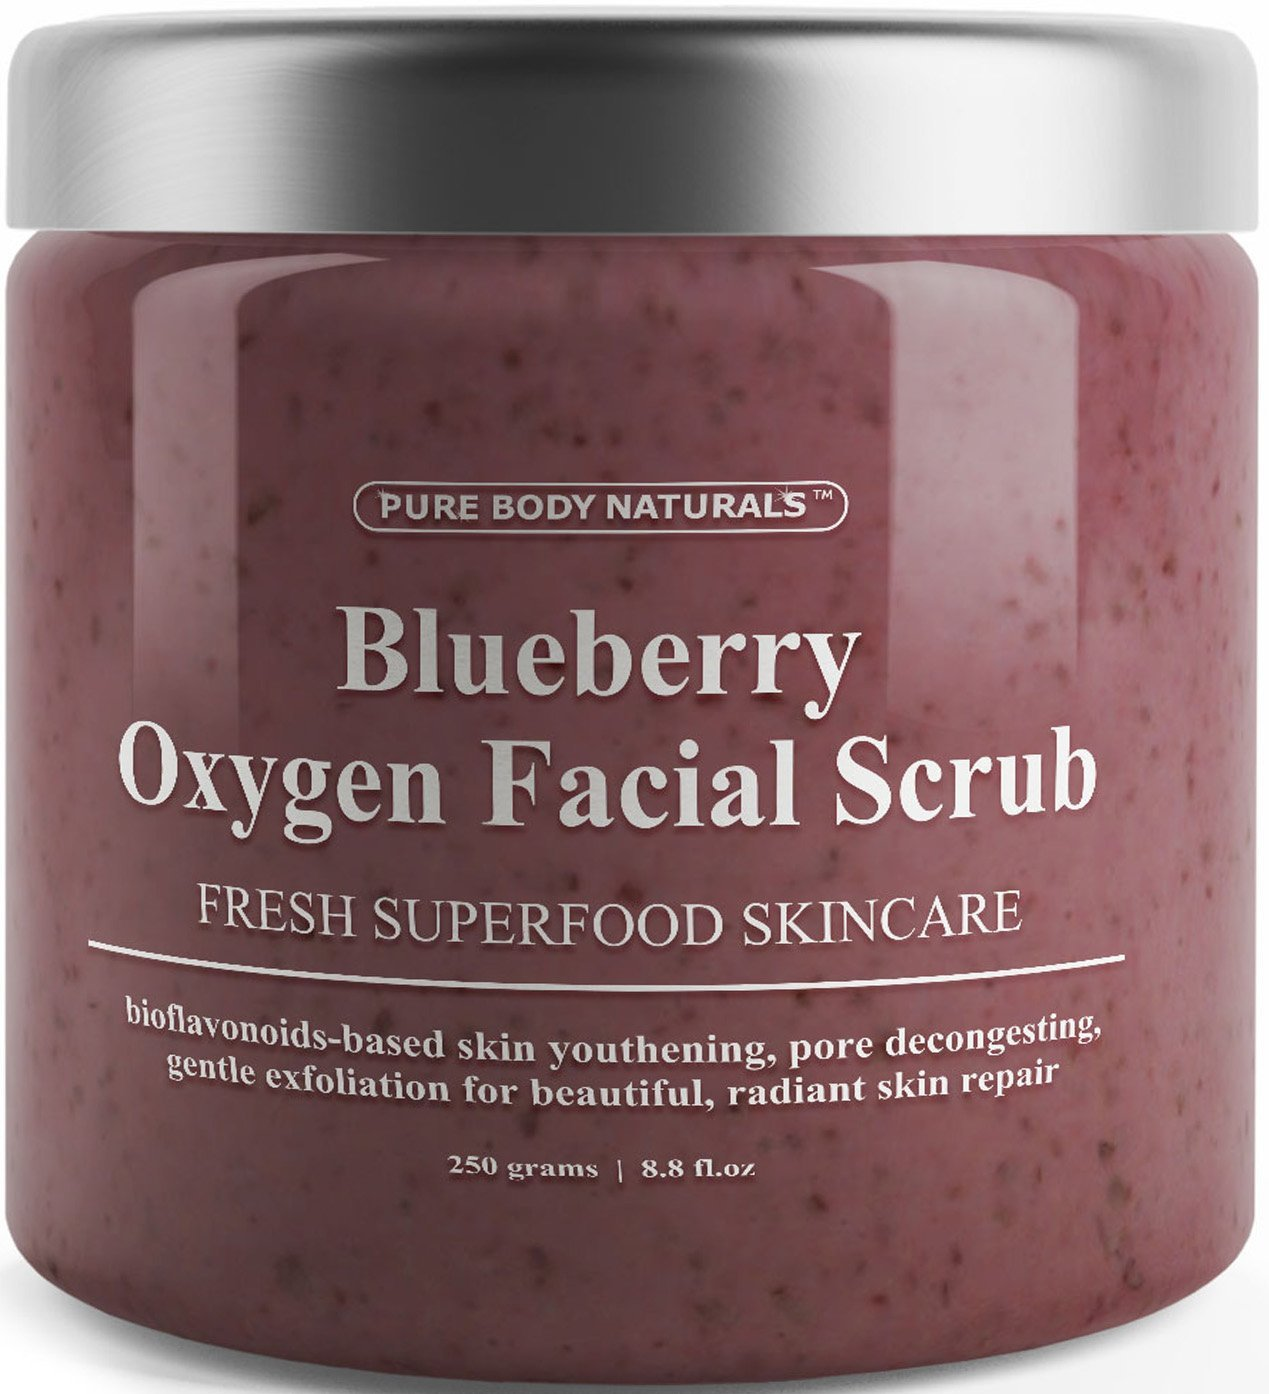 Blueberry Oxygen Facial Scrub with Antioxidants, Polishing and Exfoliating Face Wash by Pure Body Naturals, 8.8 Ounce